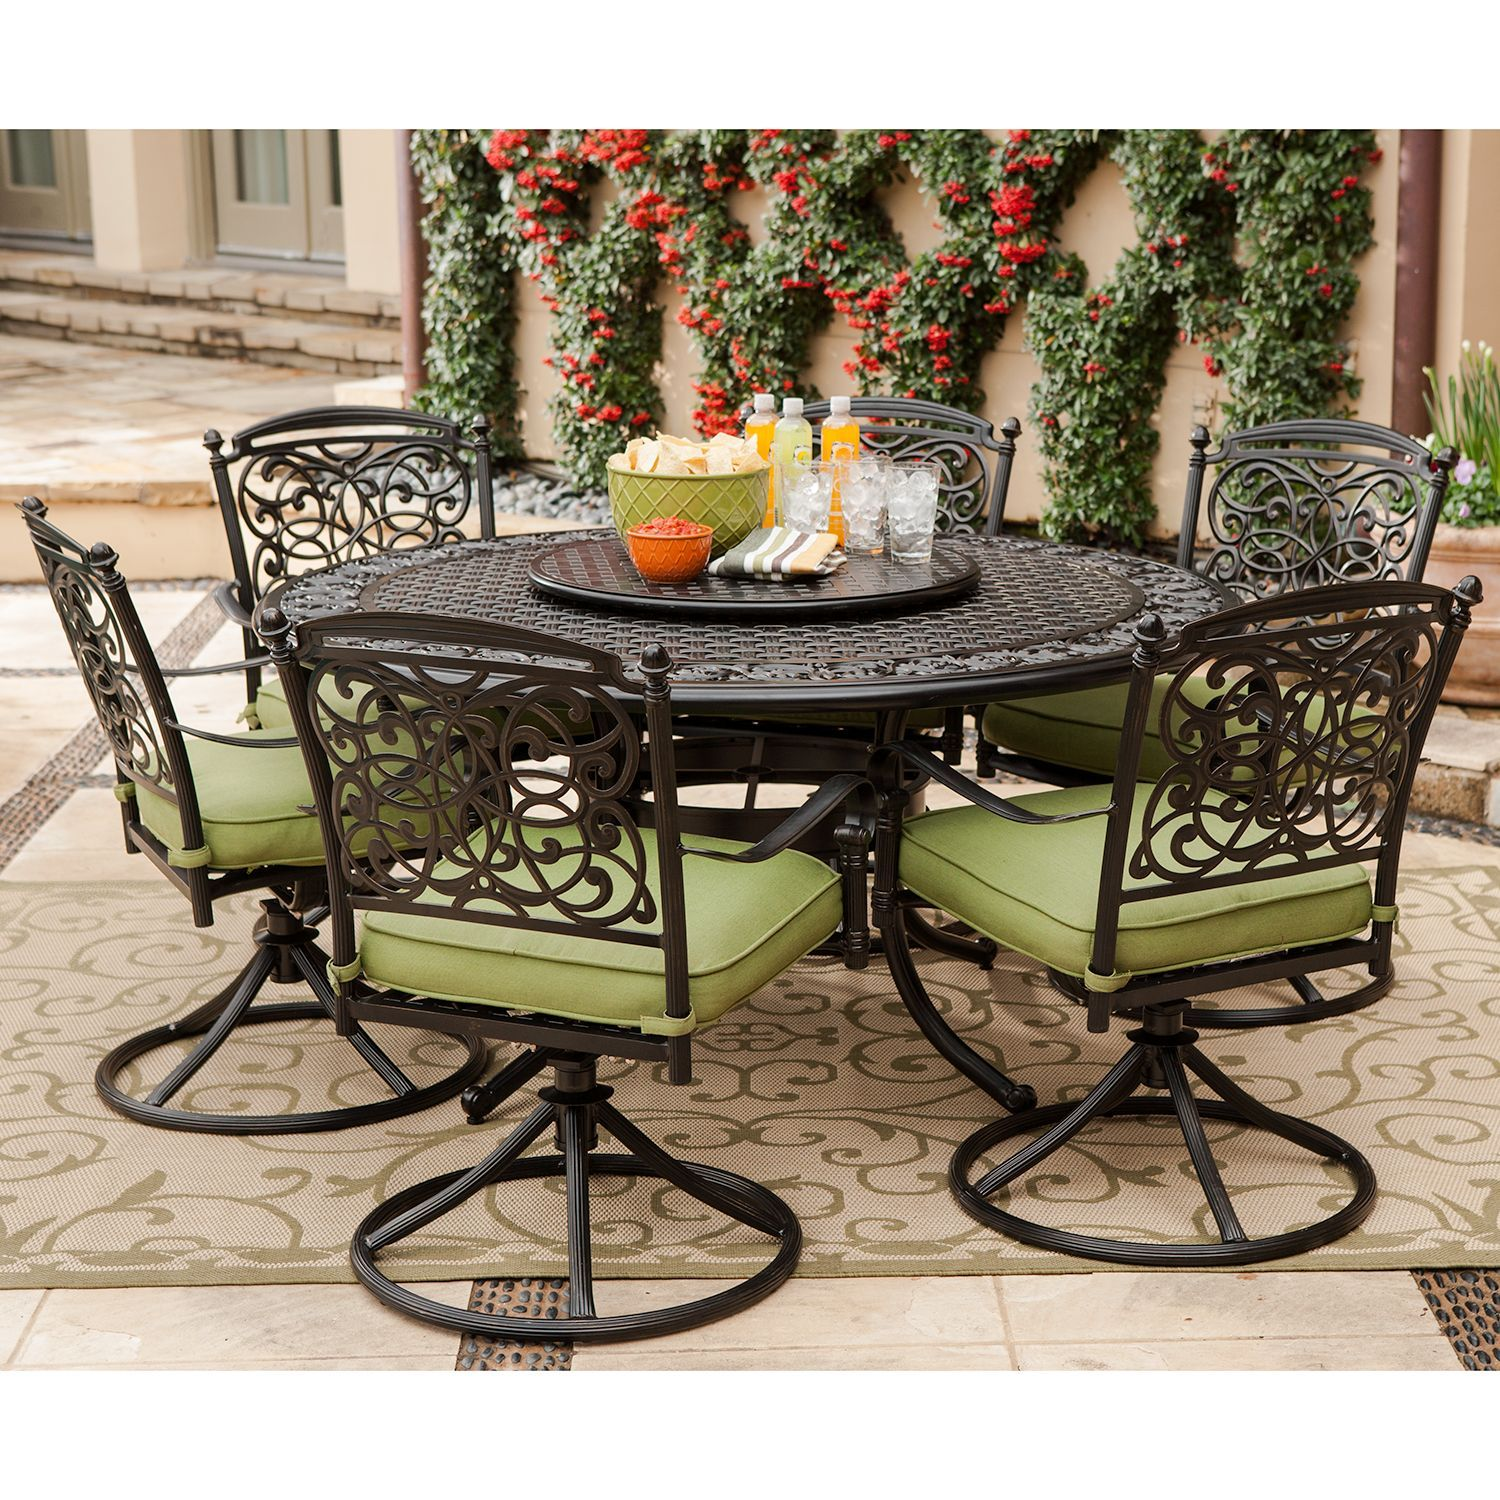 Renaissance Outdoor Patio Dining Set